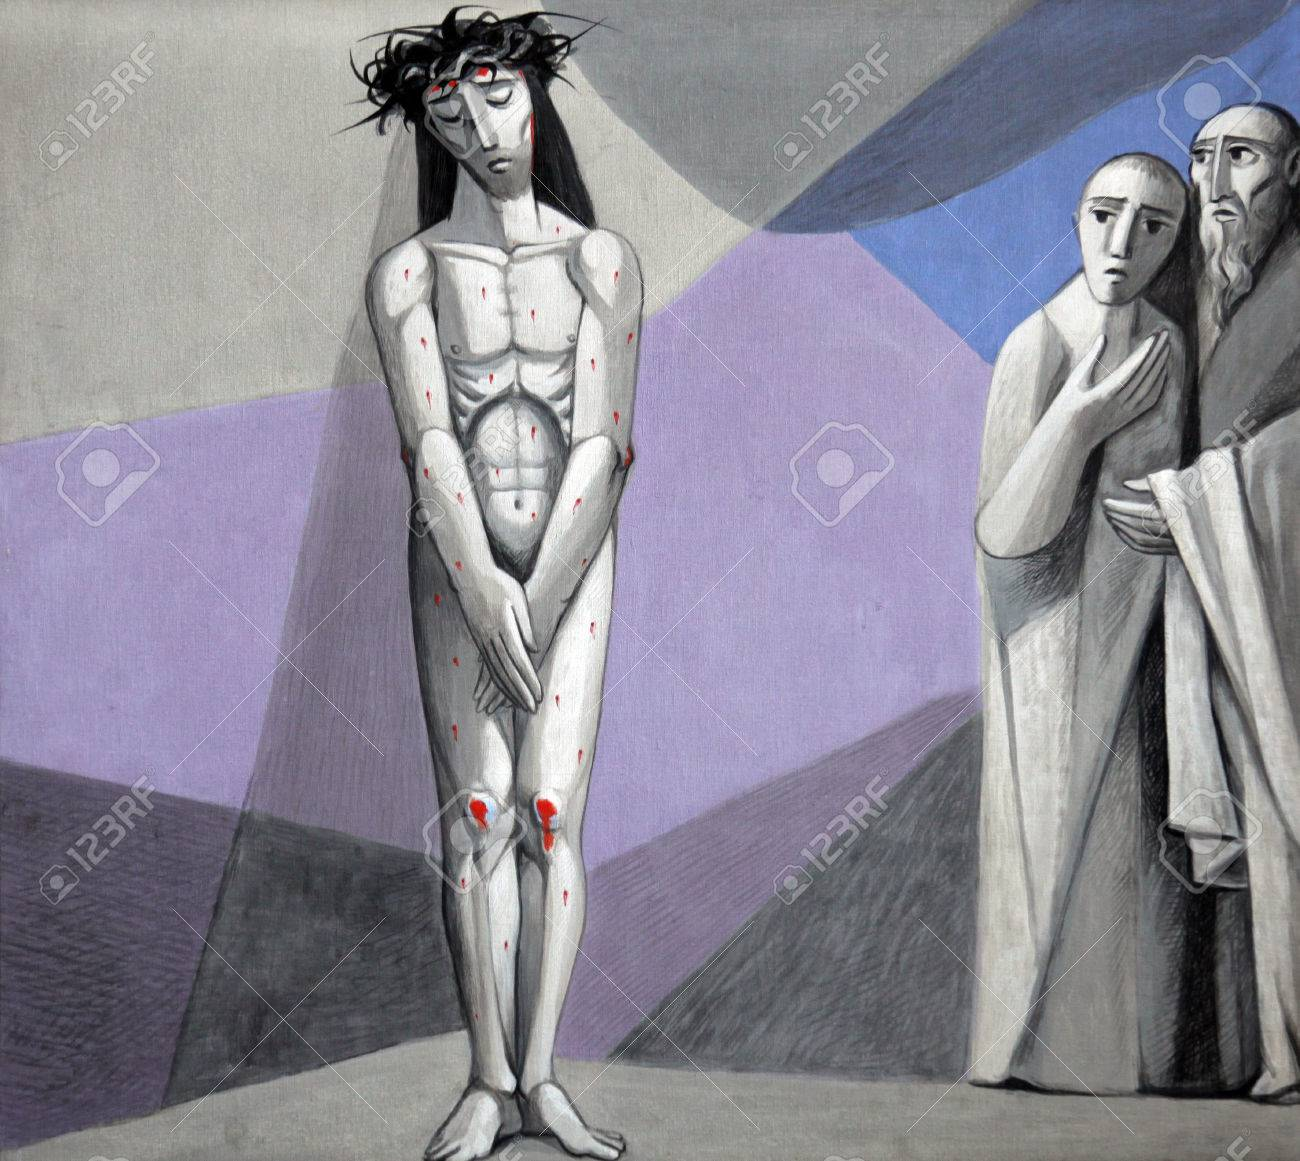 10th Stations of the Cross, Jesus is stripped of His garments in the Church of the Holy Trinity in the Bavarian village of Gemunden am Main Stock Photo - 39885369